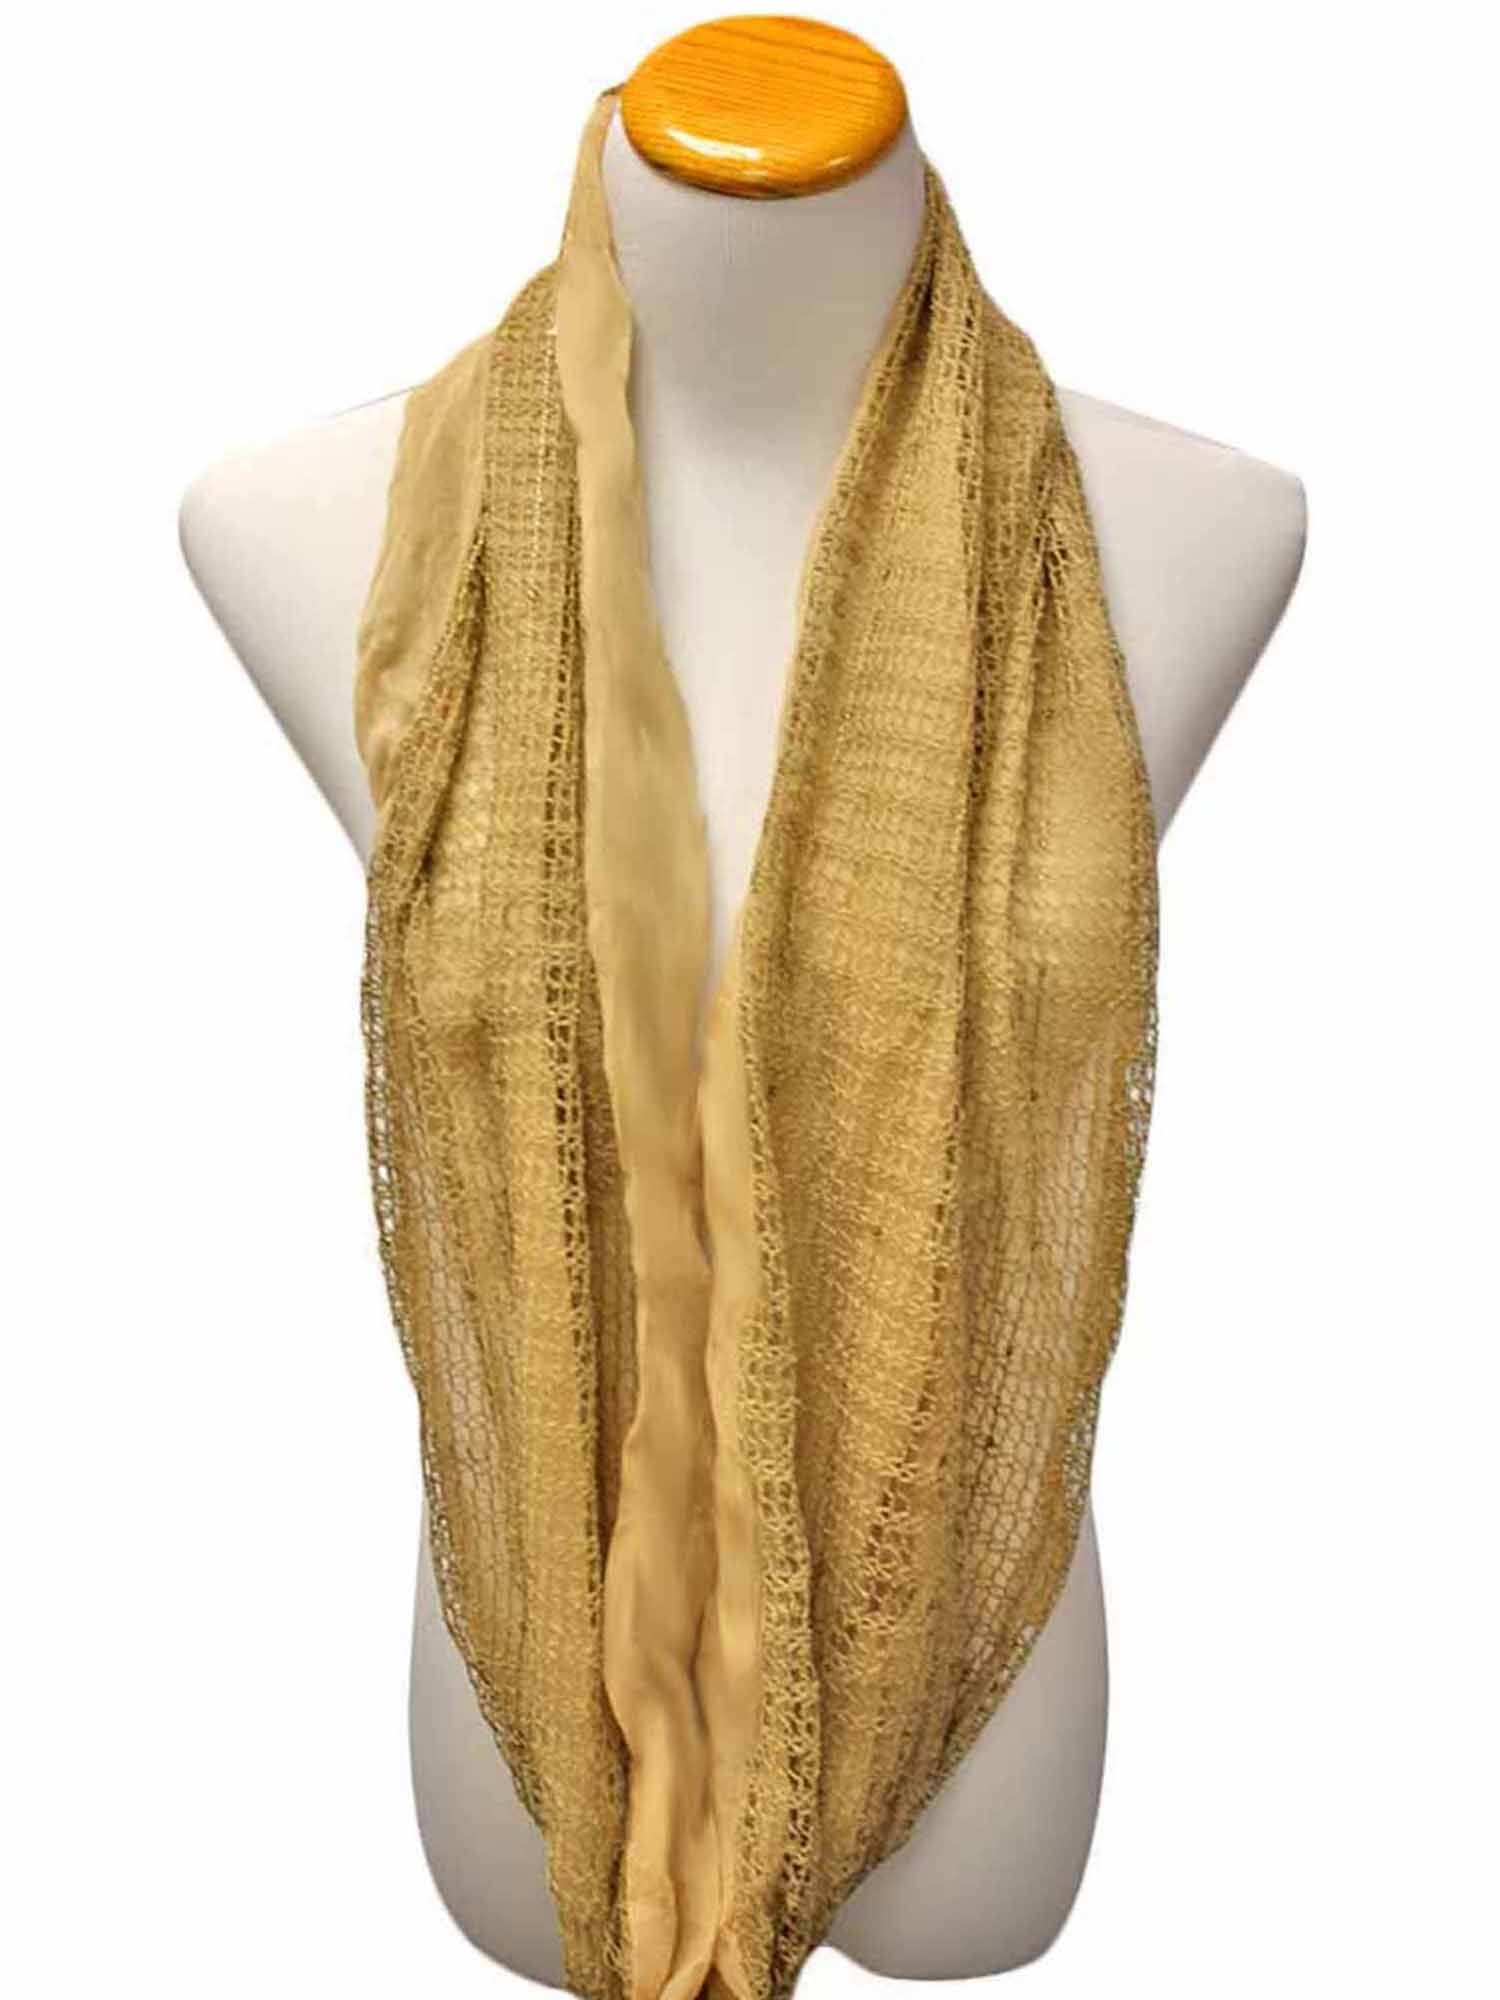 Dual Layered Infinity Scarf With Sequins